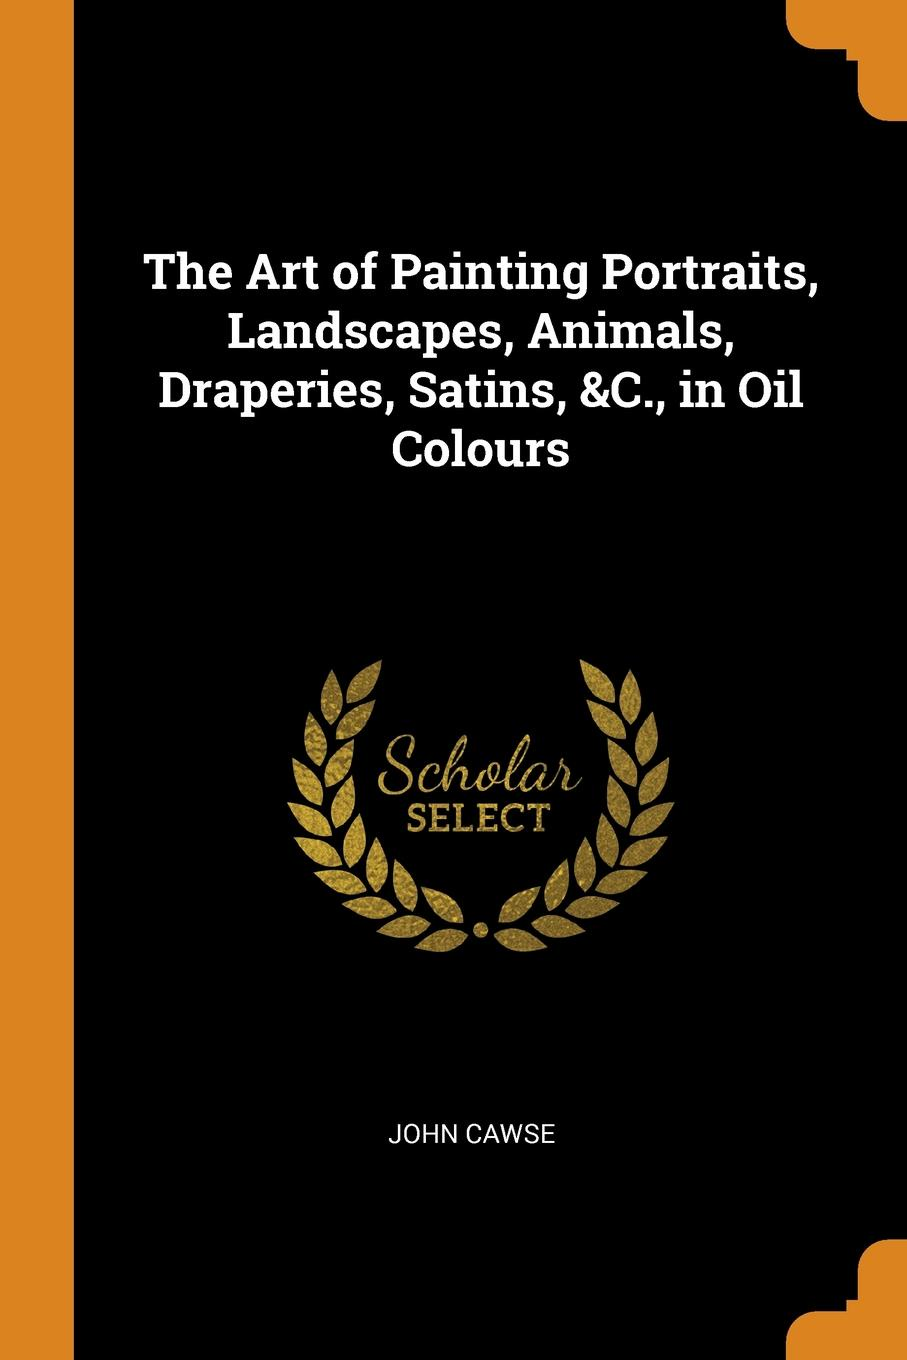 John Cawse. The Art of Painting Portraits, Landscapes, Animals, Draperies, Satins, .C., in Oil Colours